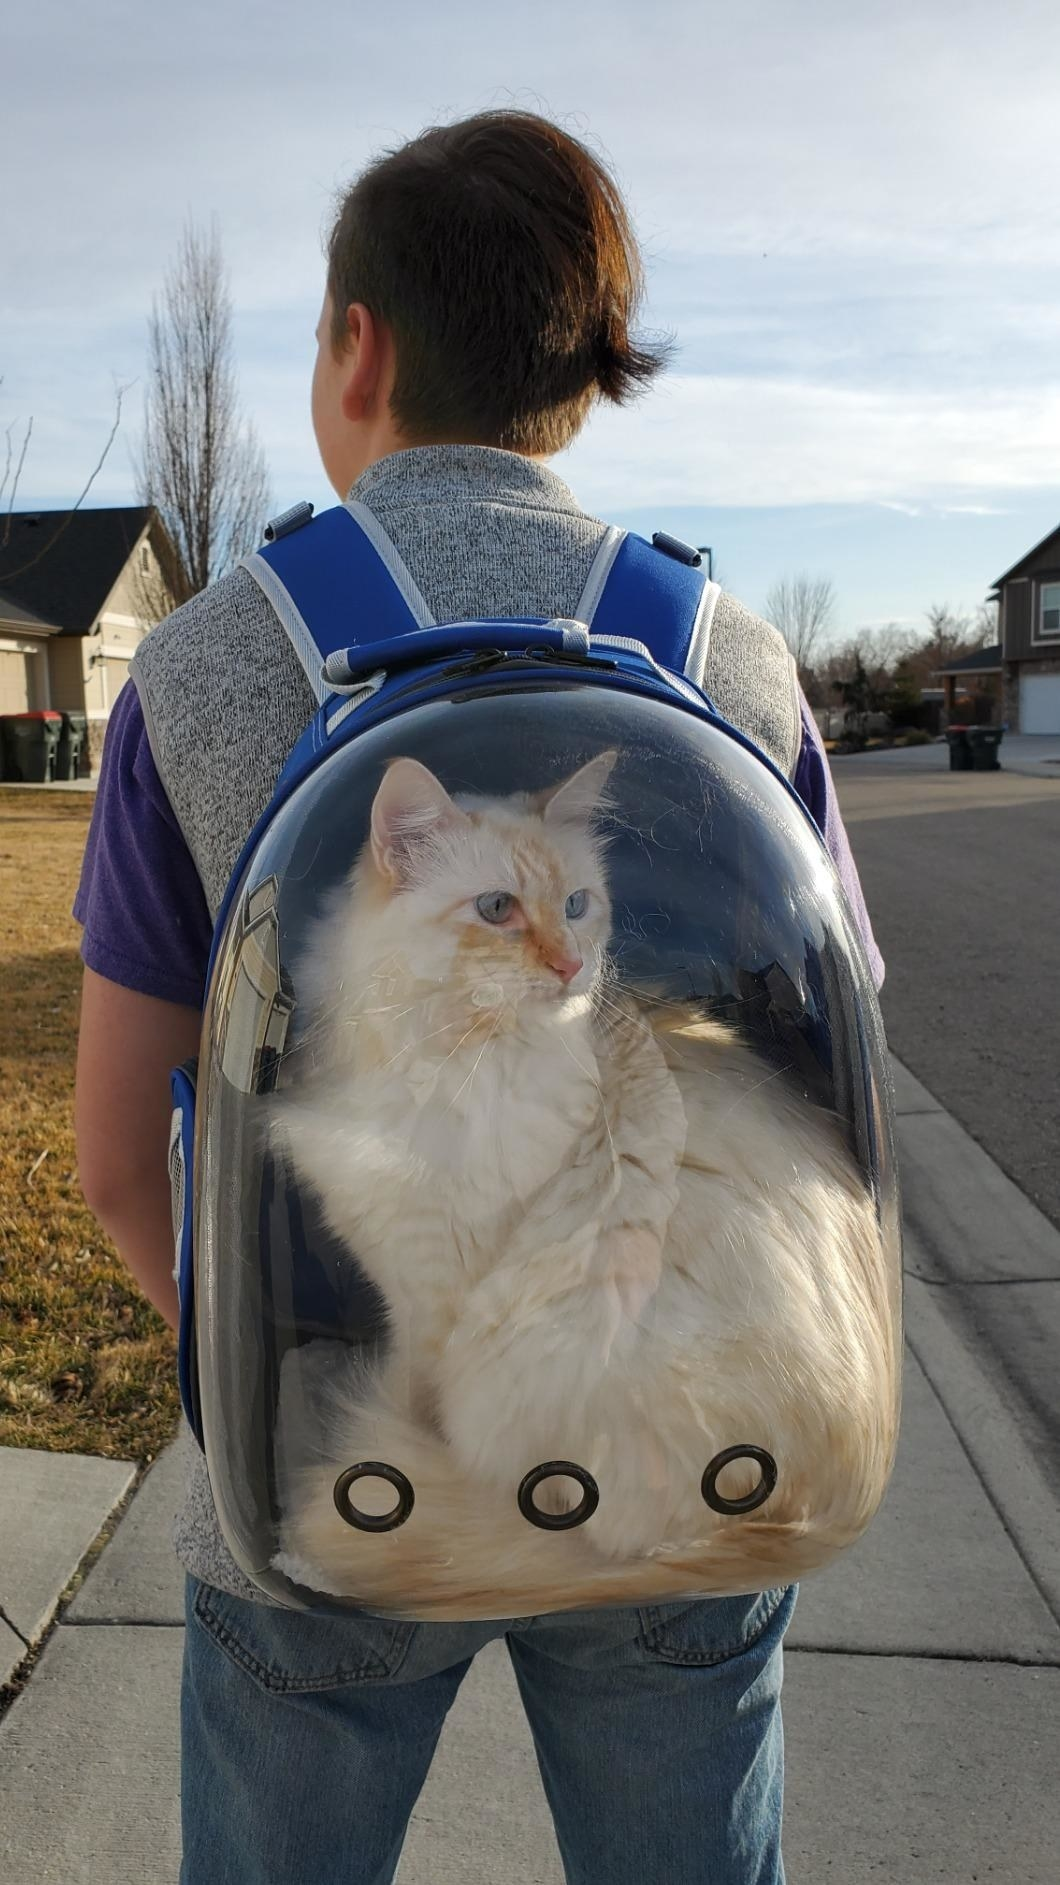 A reviewer carrying a cat on their back using the bubble backpack